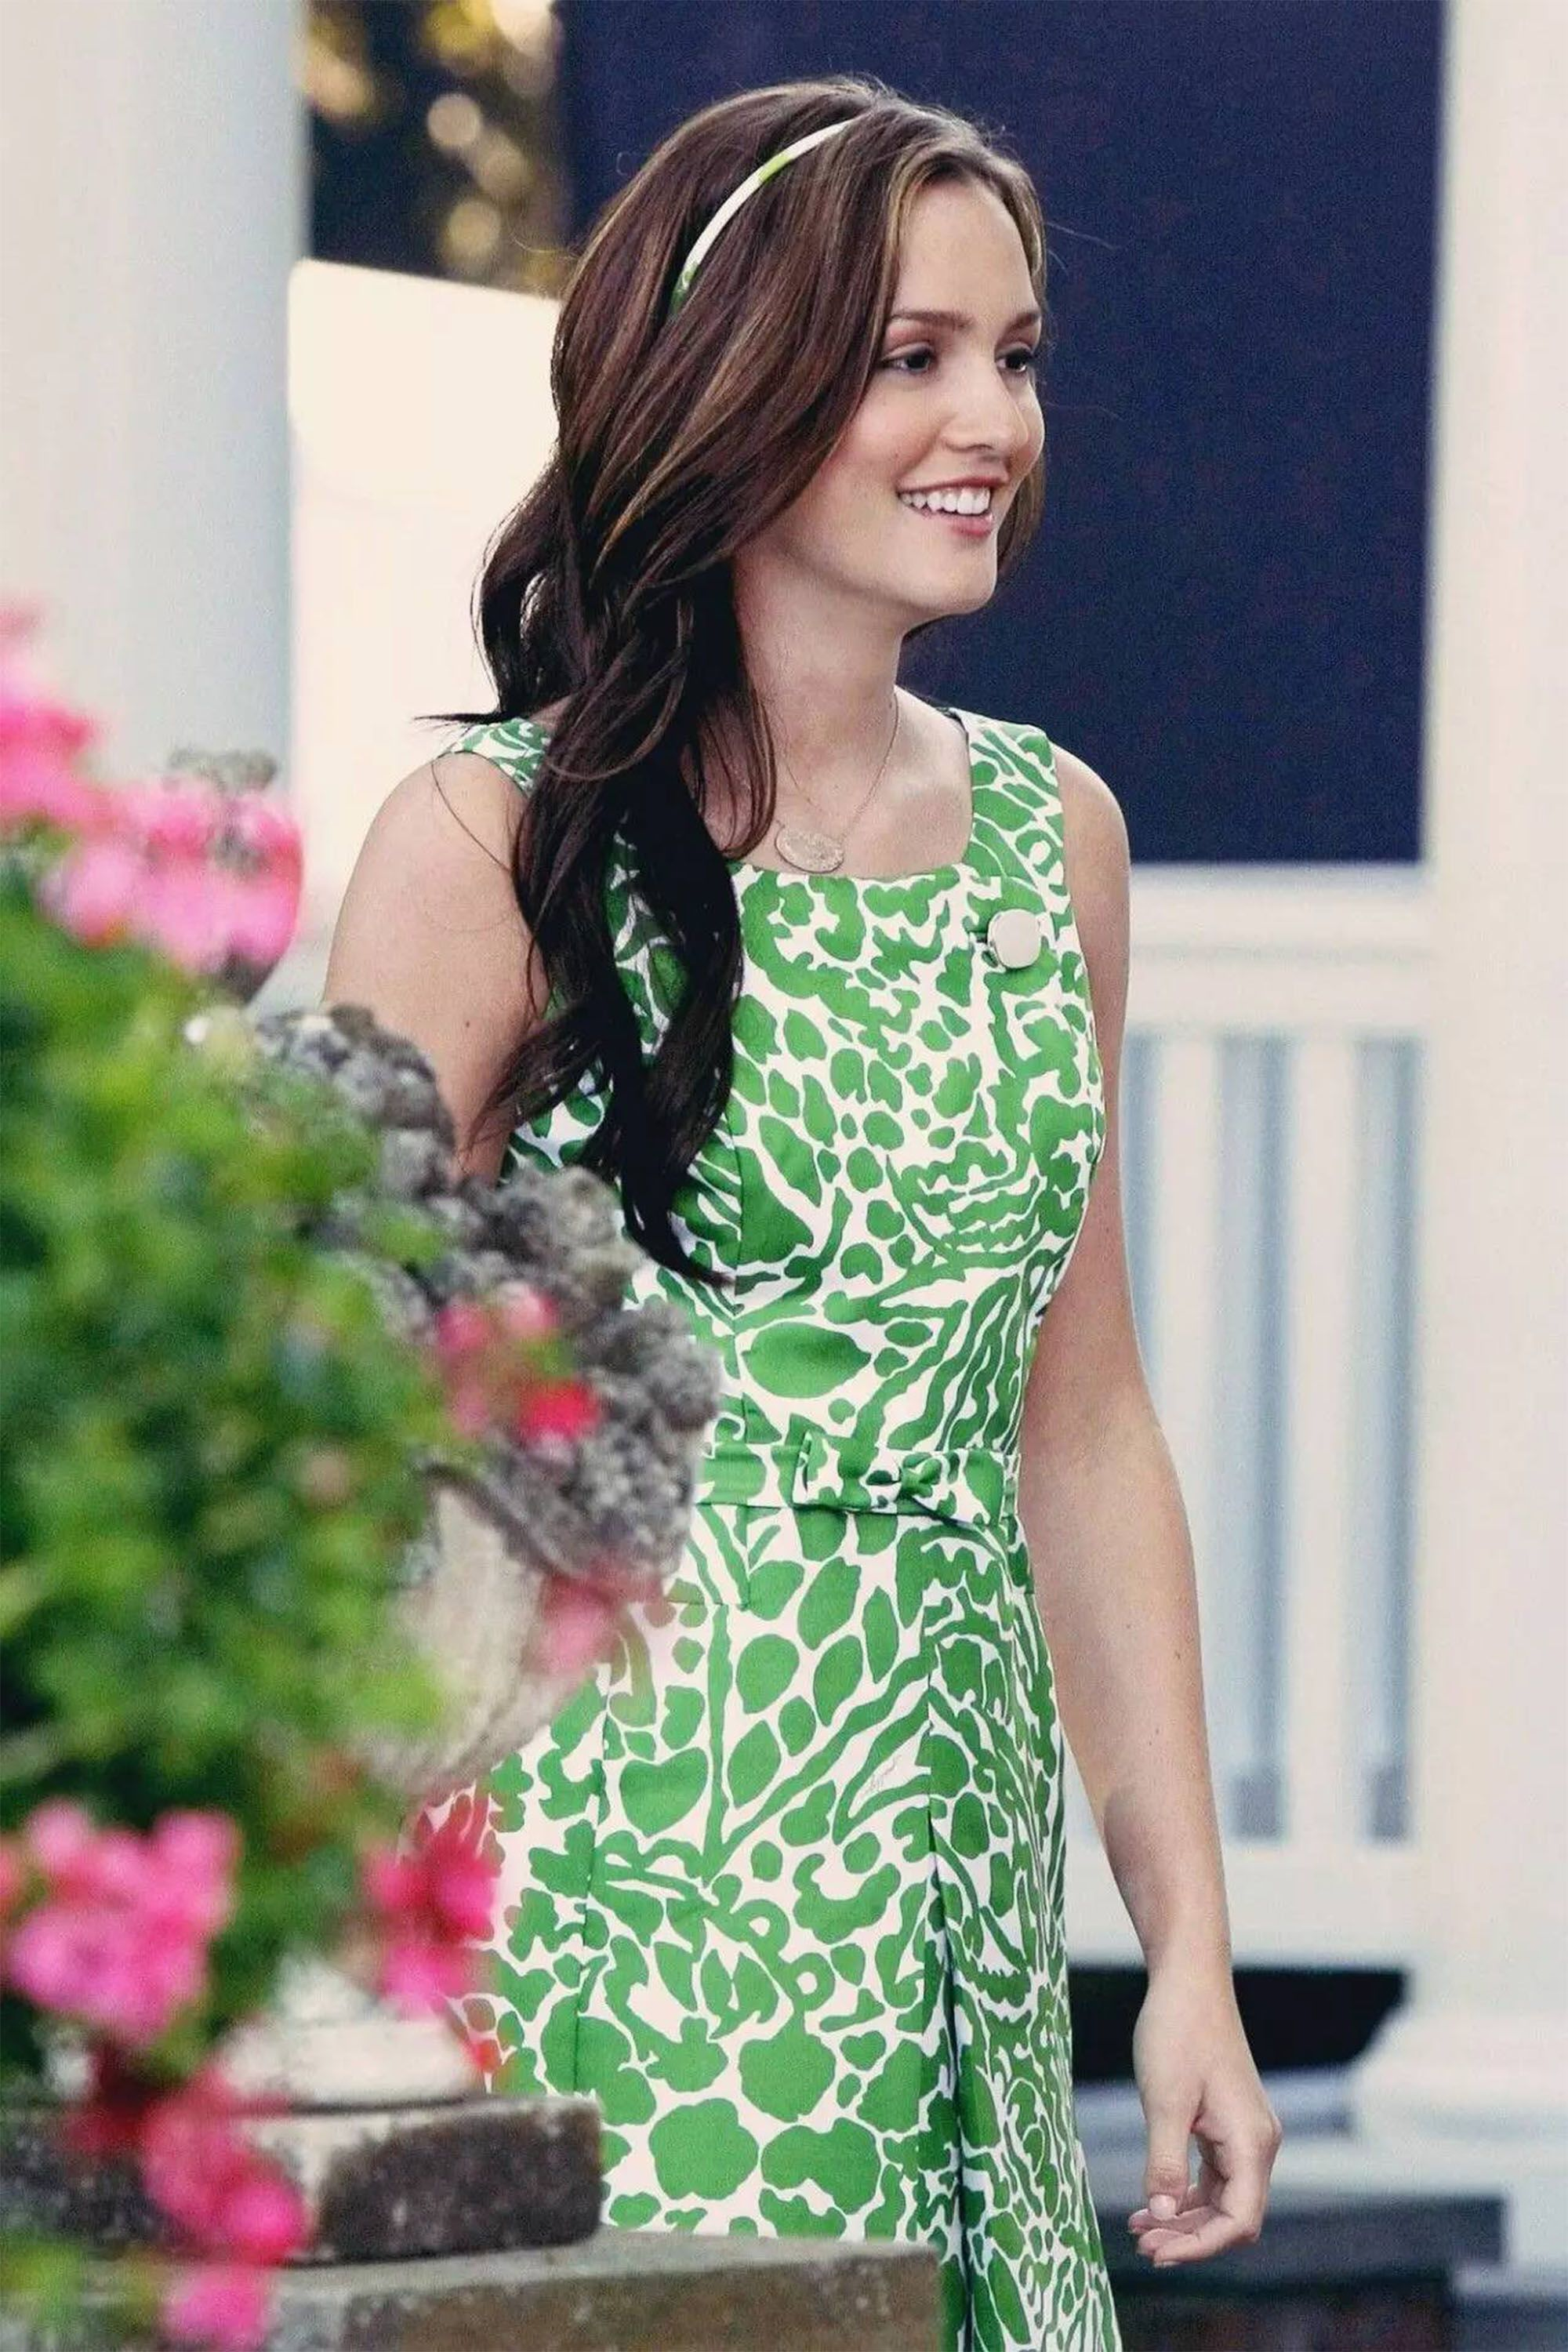 Best Gossip Girl Fashion - Best Fashion